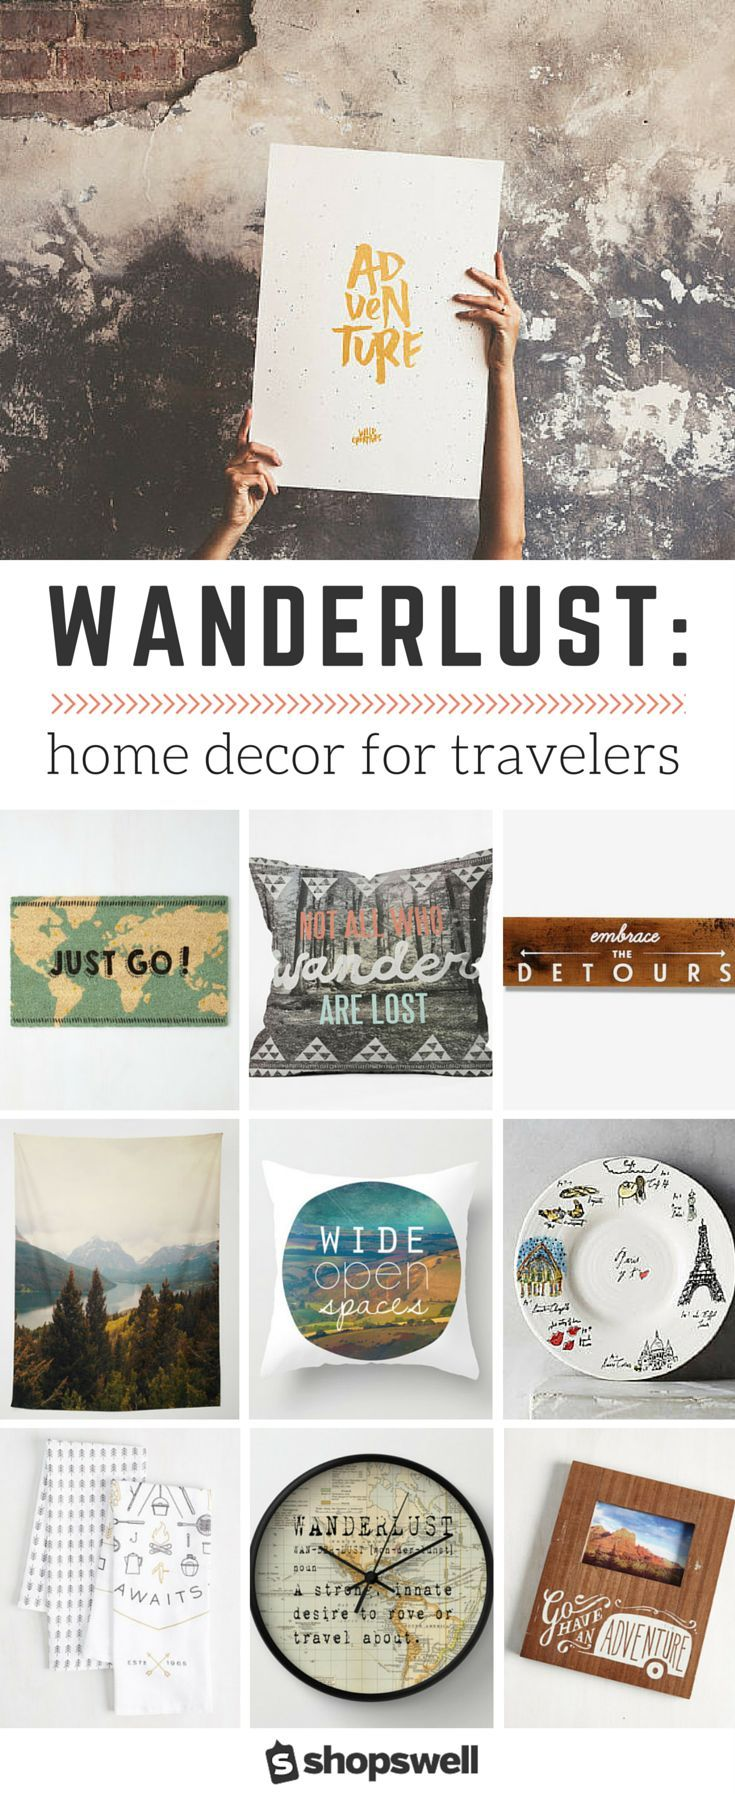 Photo of Wanderlust: A Home Decor Collection for Travelers   Shopswell